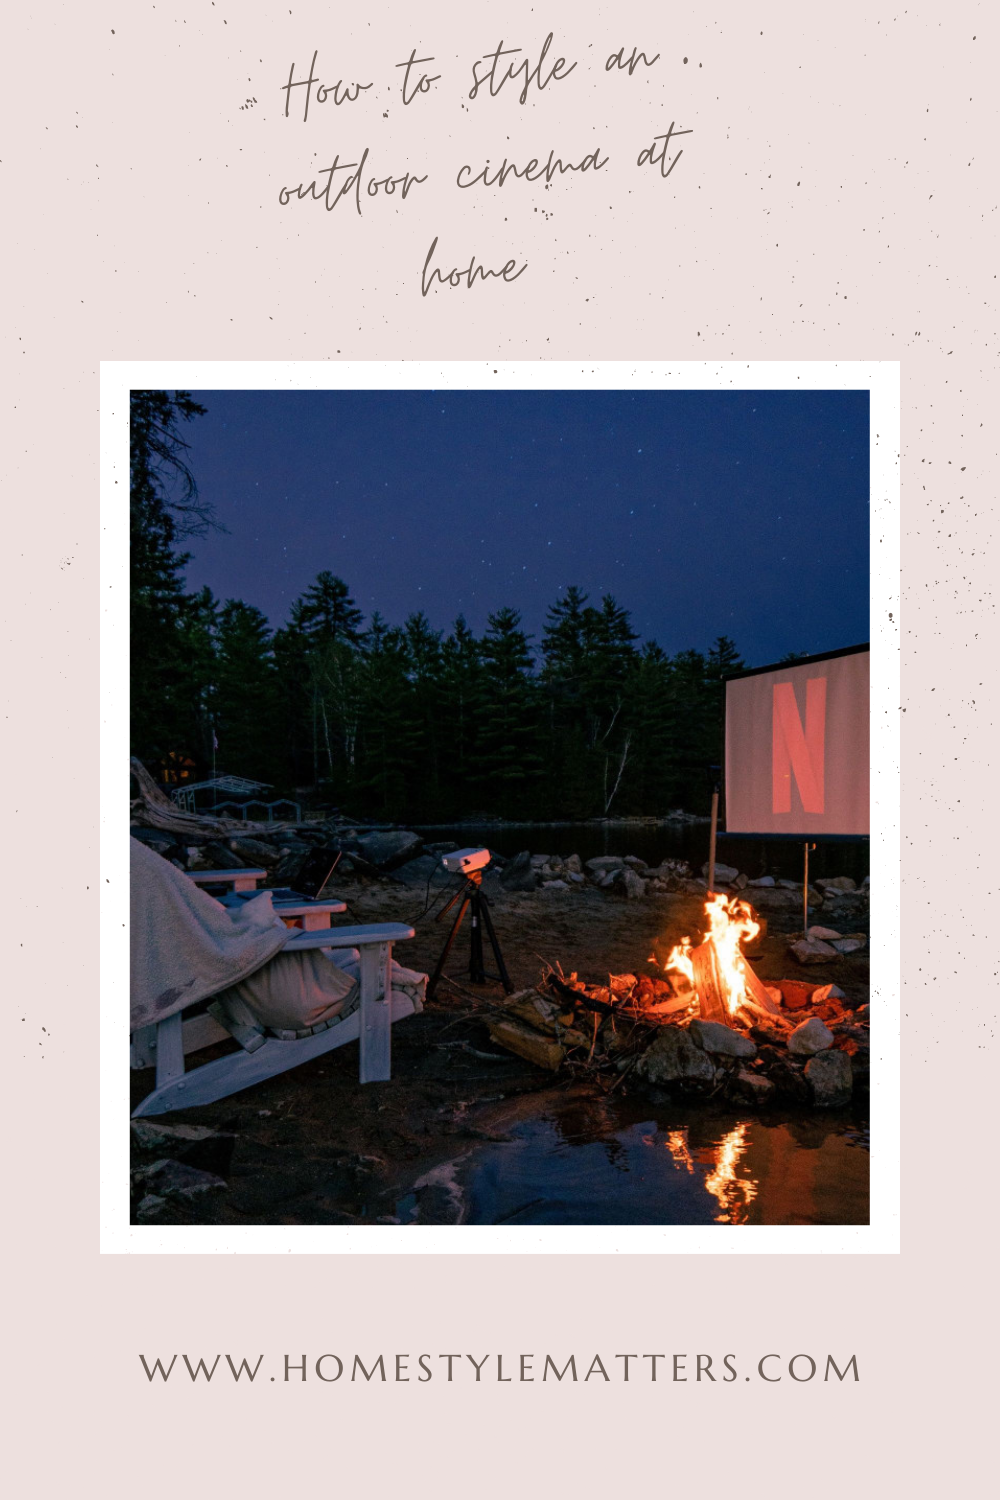 How to style an outdoor cinema at home 5